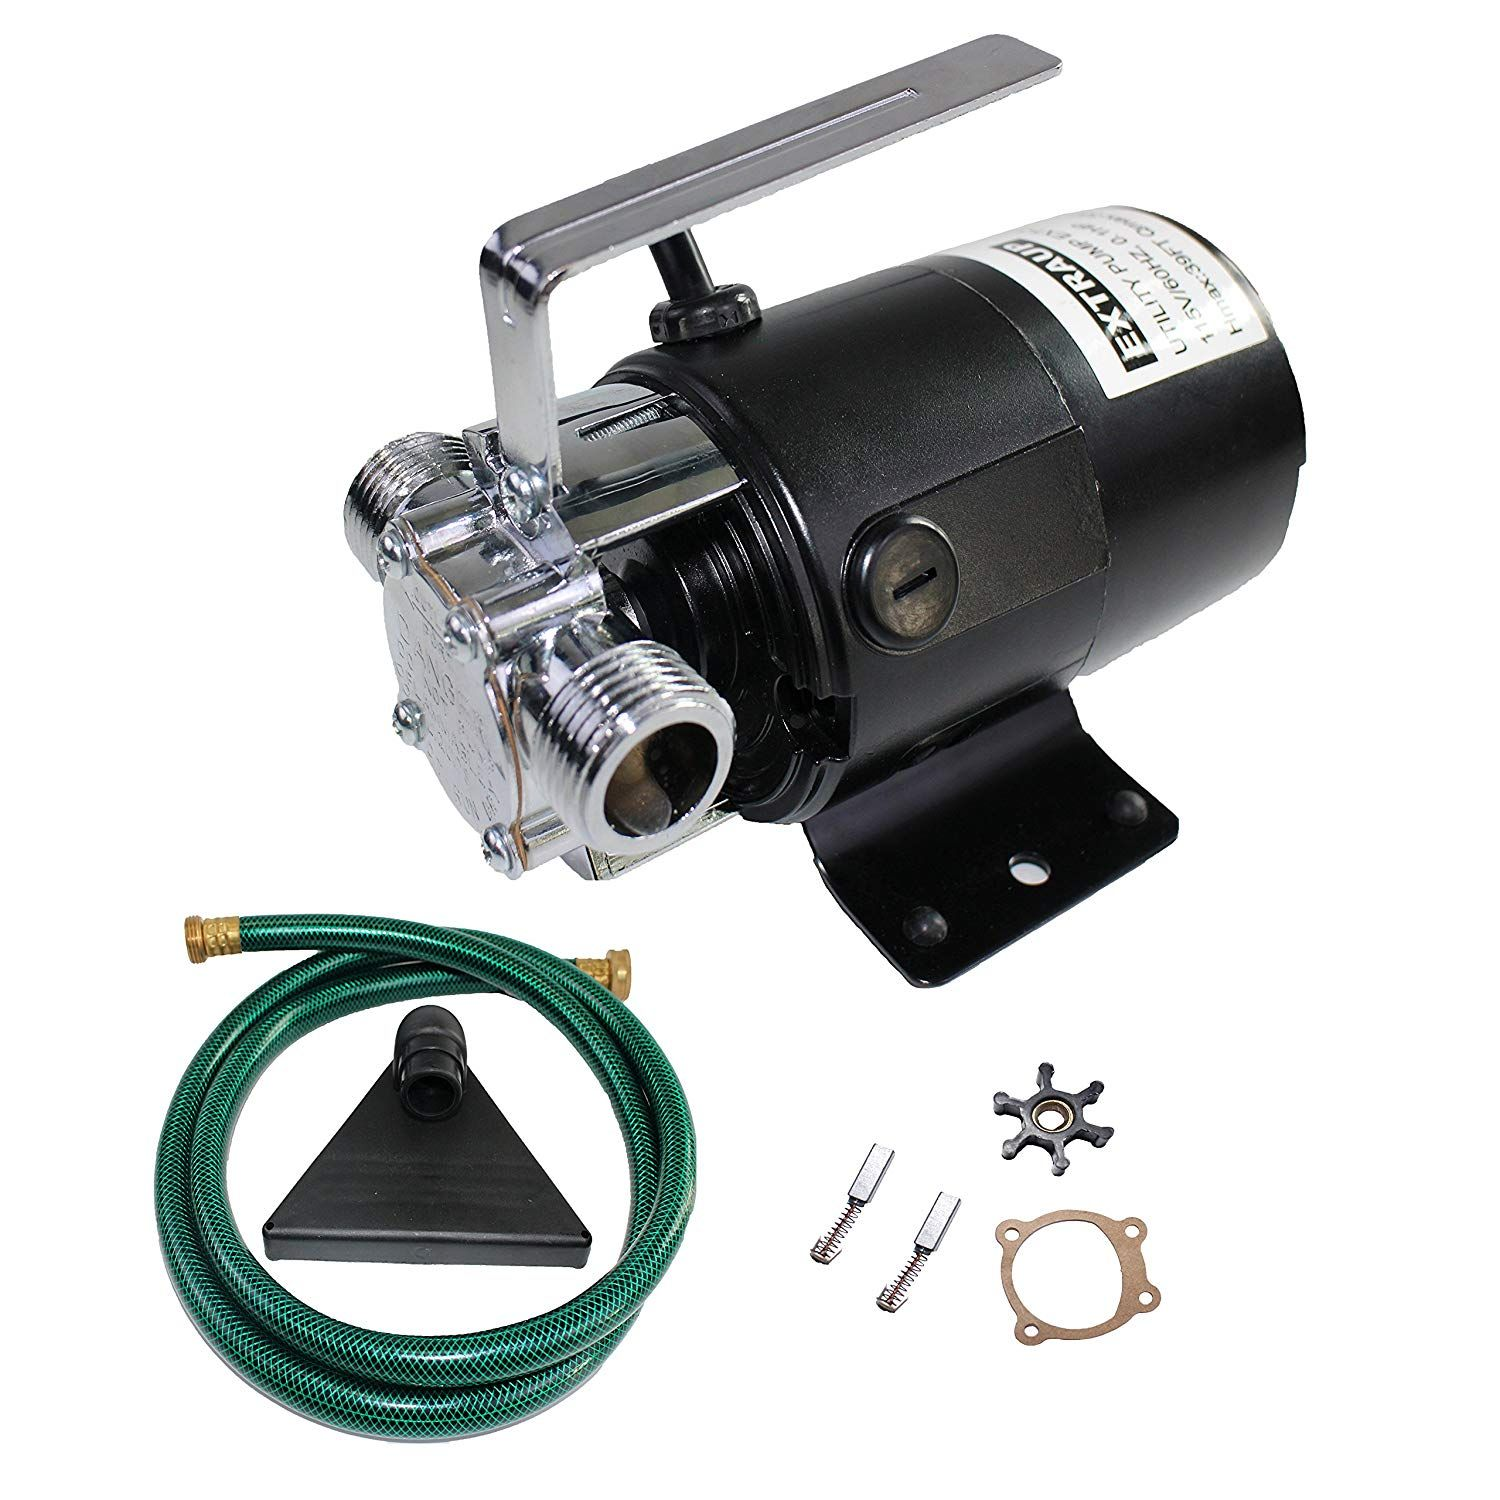 Extraup 115volt 330 Gph Portable Low Suction Electric Water Transfer Revmoval Utility Pump With Suction Hose Kit Electric Water Pump Utility Pumps Suction Hose